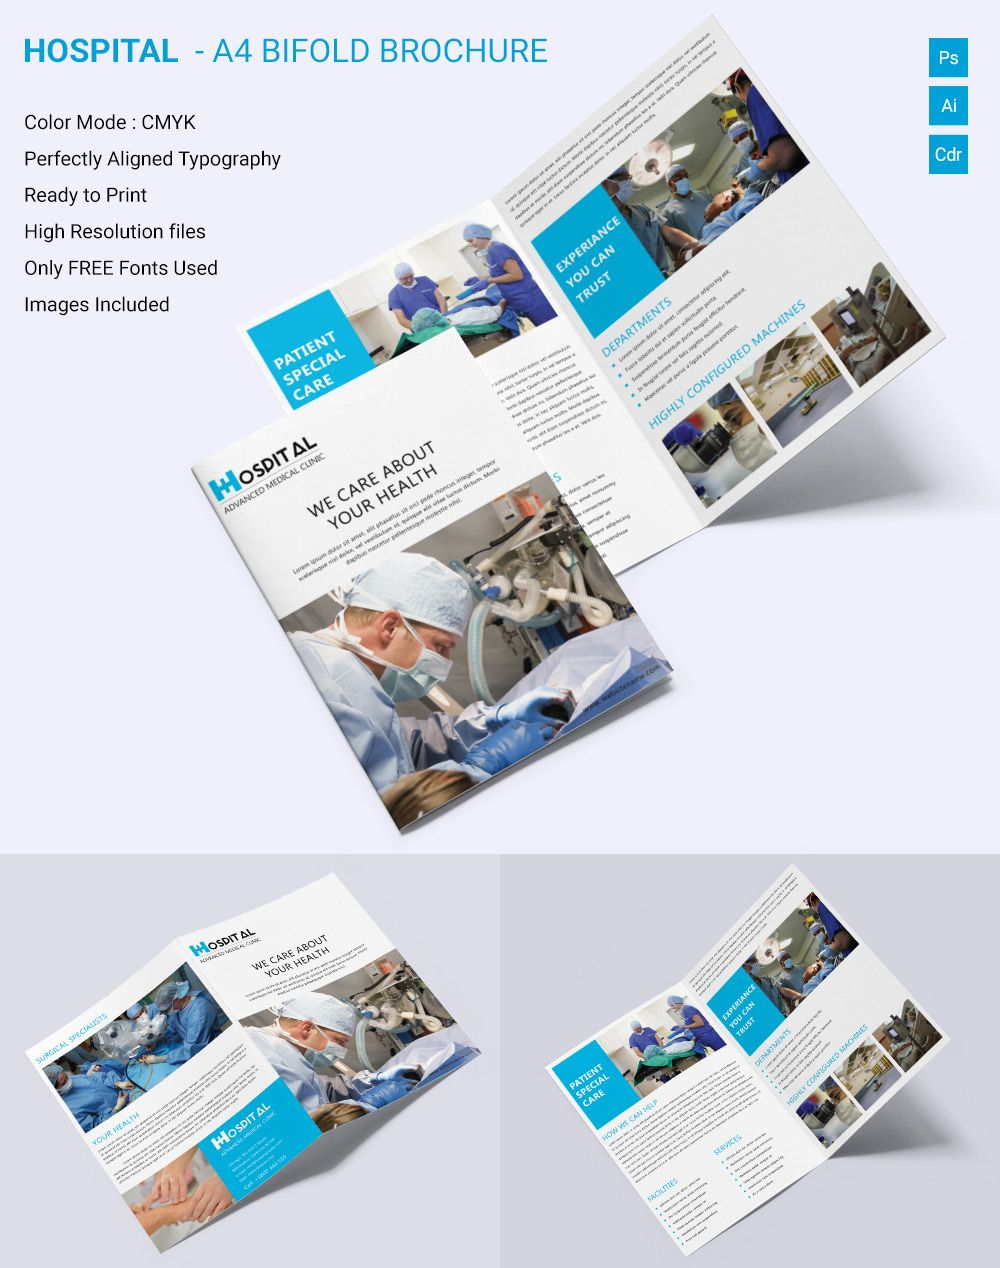 Medical Brochure Template â Free Psd Ai Vector Eps - Bi fold brochure template indesign